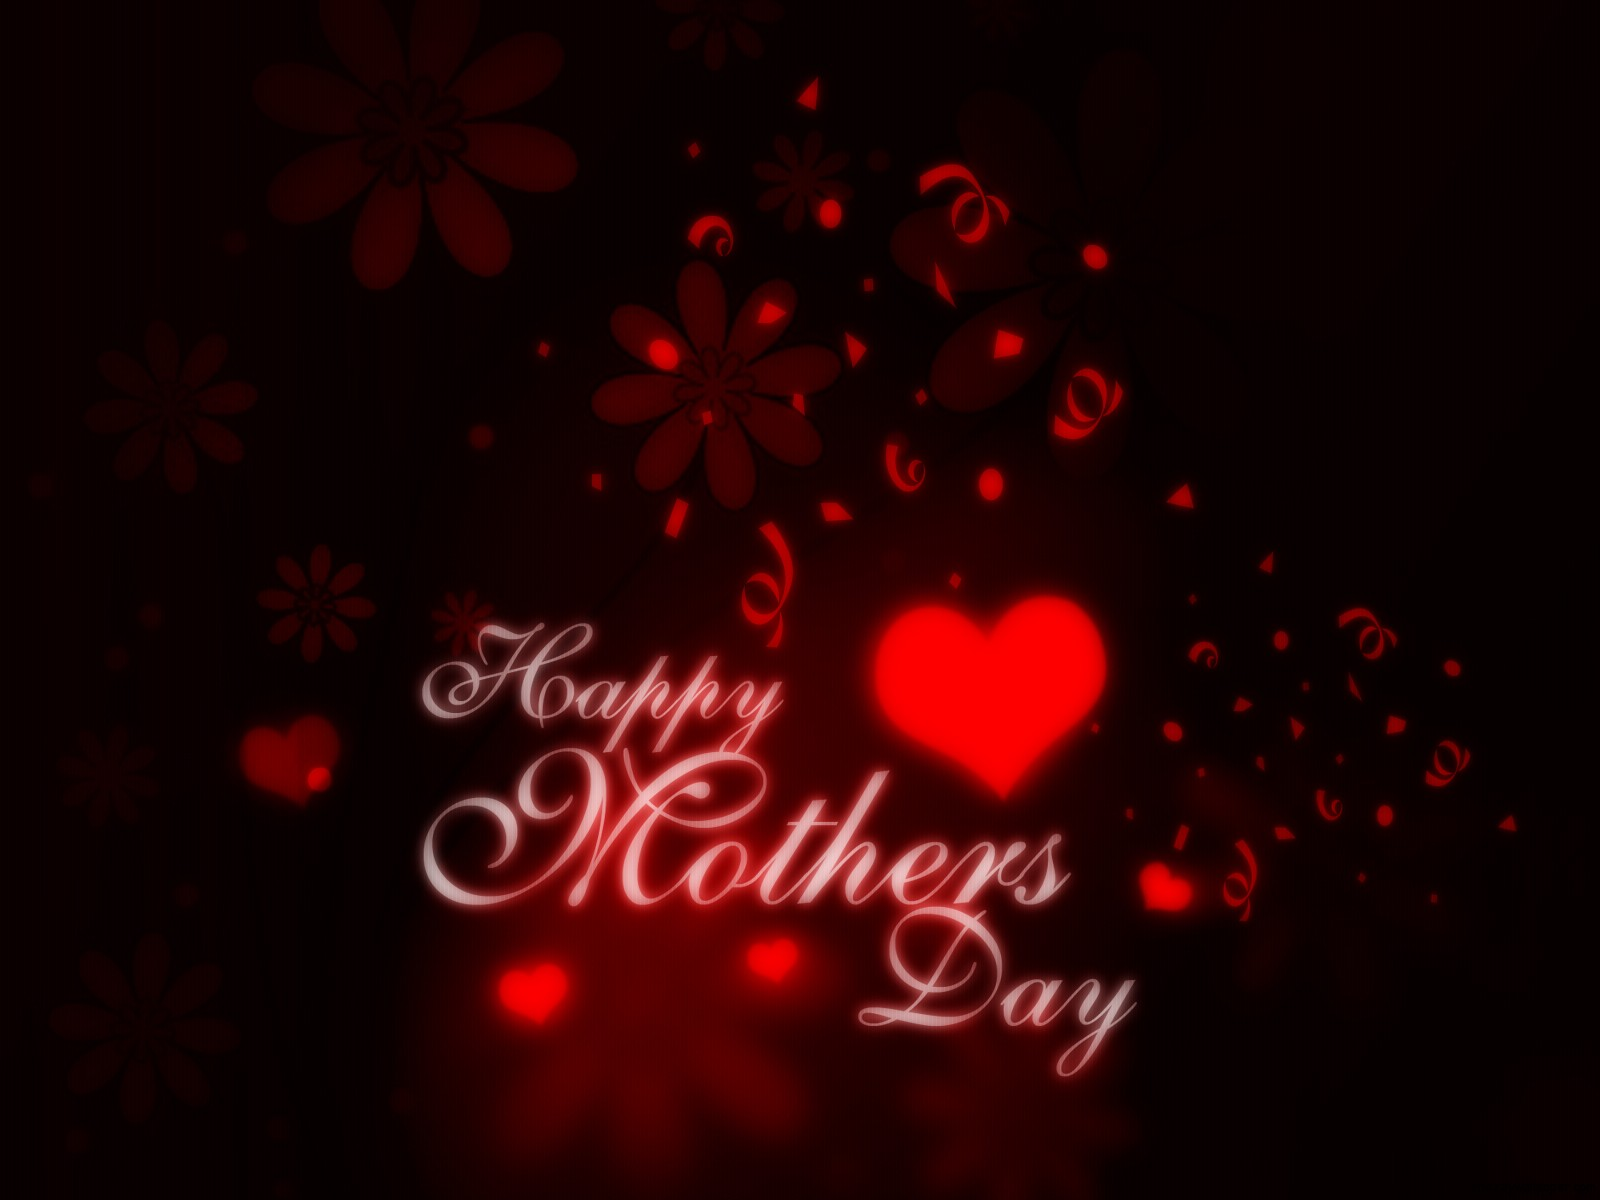 Free Download Download Happy Mothers Day Wallpaper Hd 3126 Full